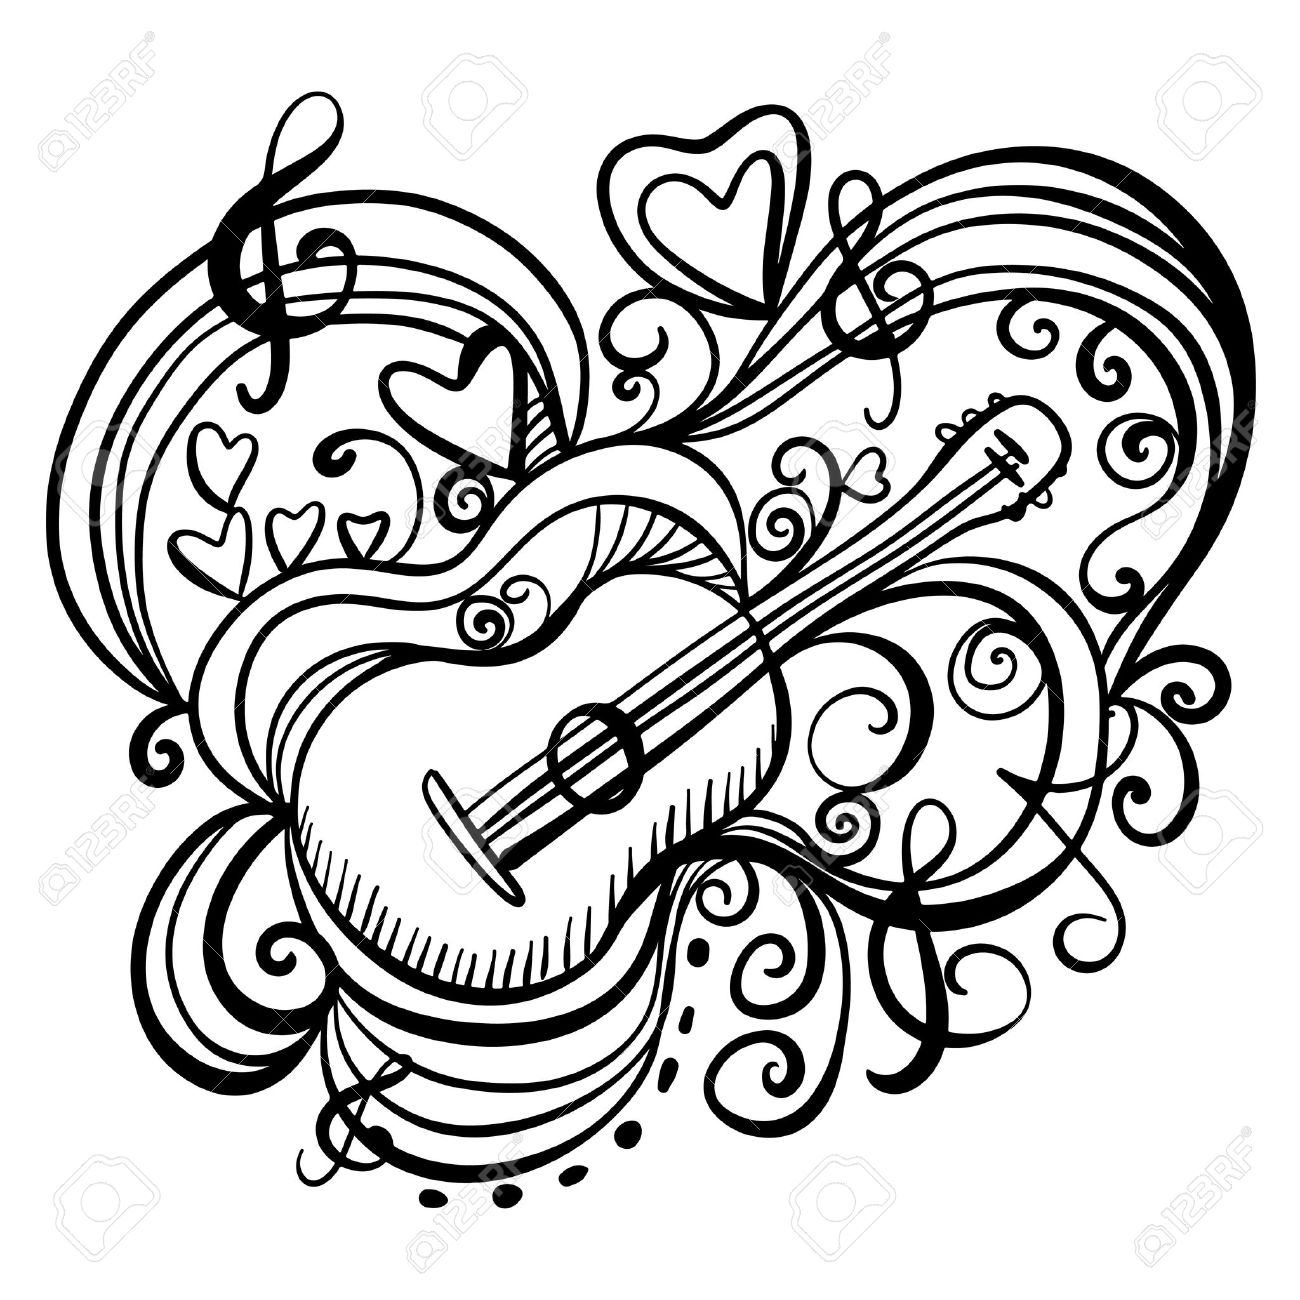 1300x1300 Music Abstract Icon With The Guitar, Hearts, Musical Note, Treble